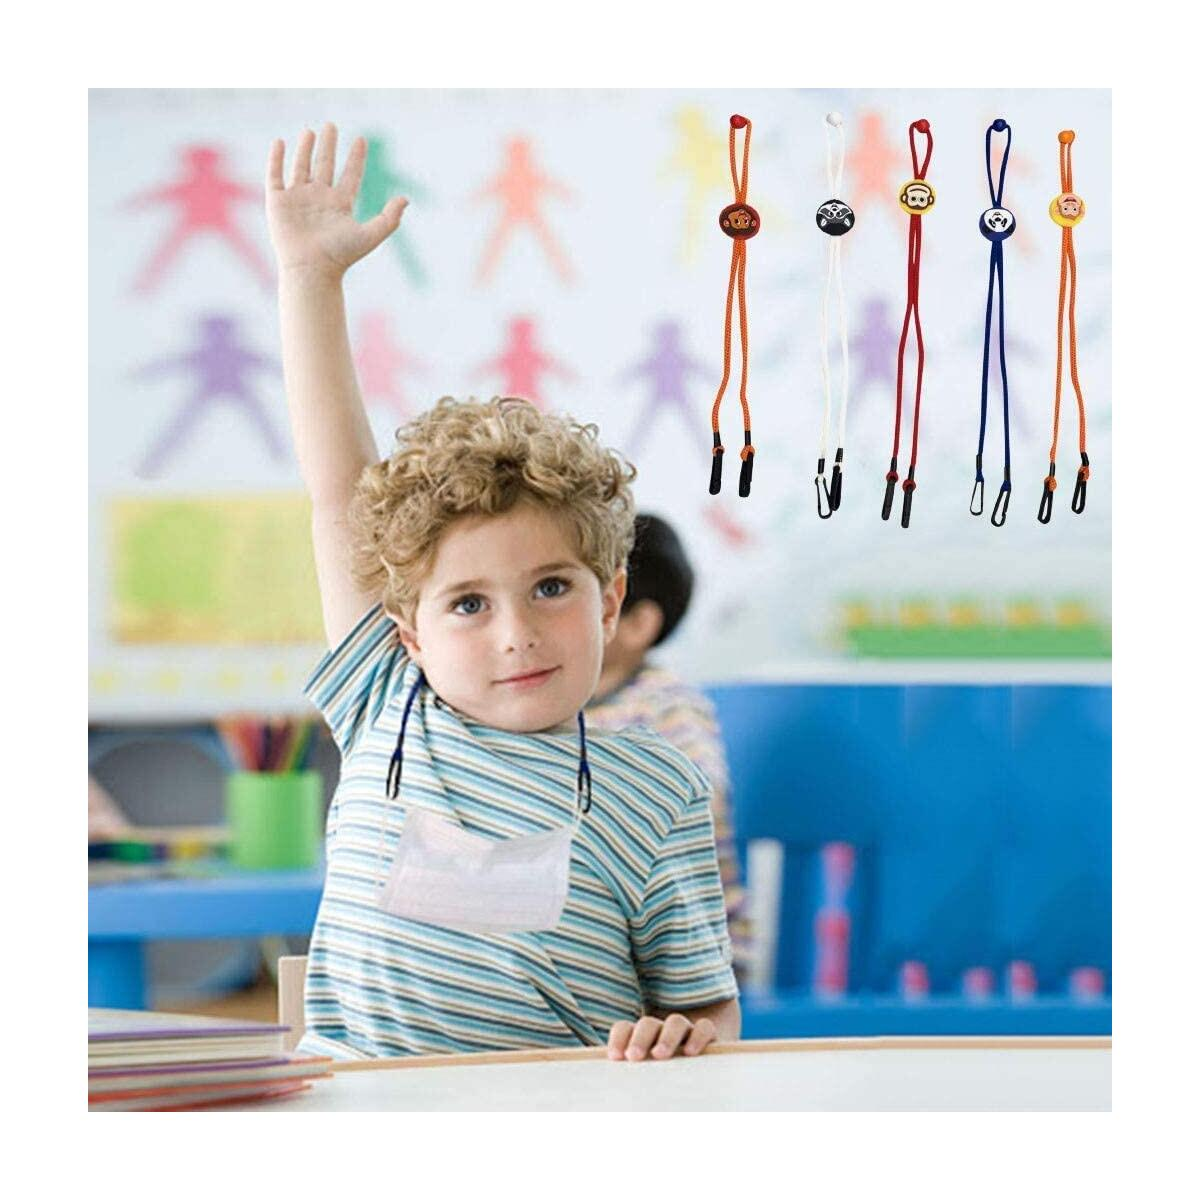 5PCS for Kids Cute Adjustable Length M.a.s.k Lanyard Handy Convenient Safety Cover Holder Hanger Comfortable Around The Neck Rest Ear Saver for School Outdoor Sport (5pcs, Multicolor)